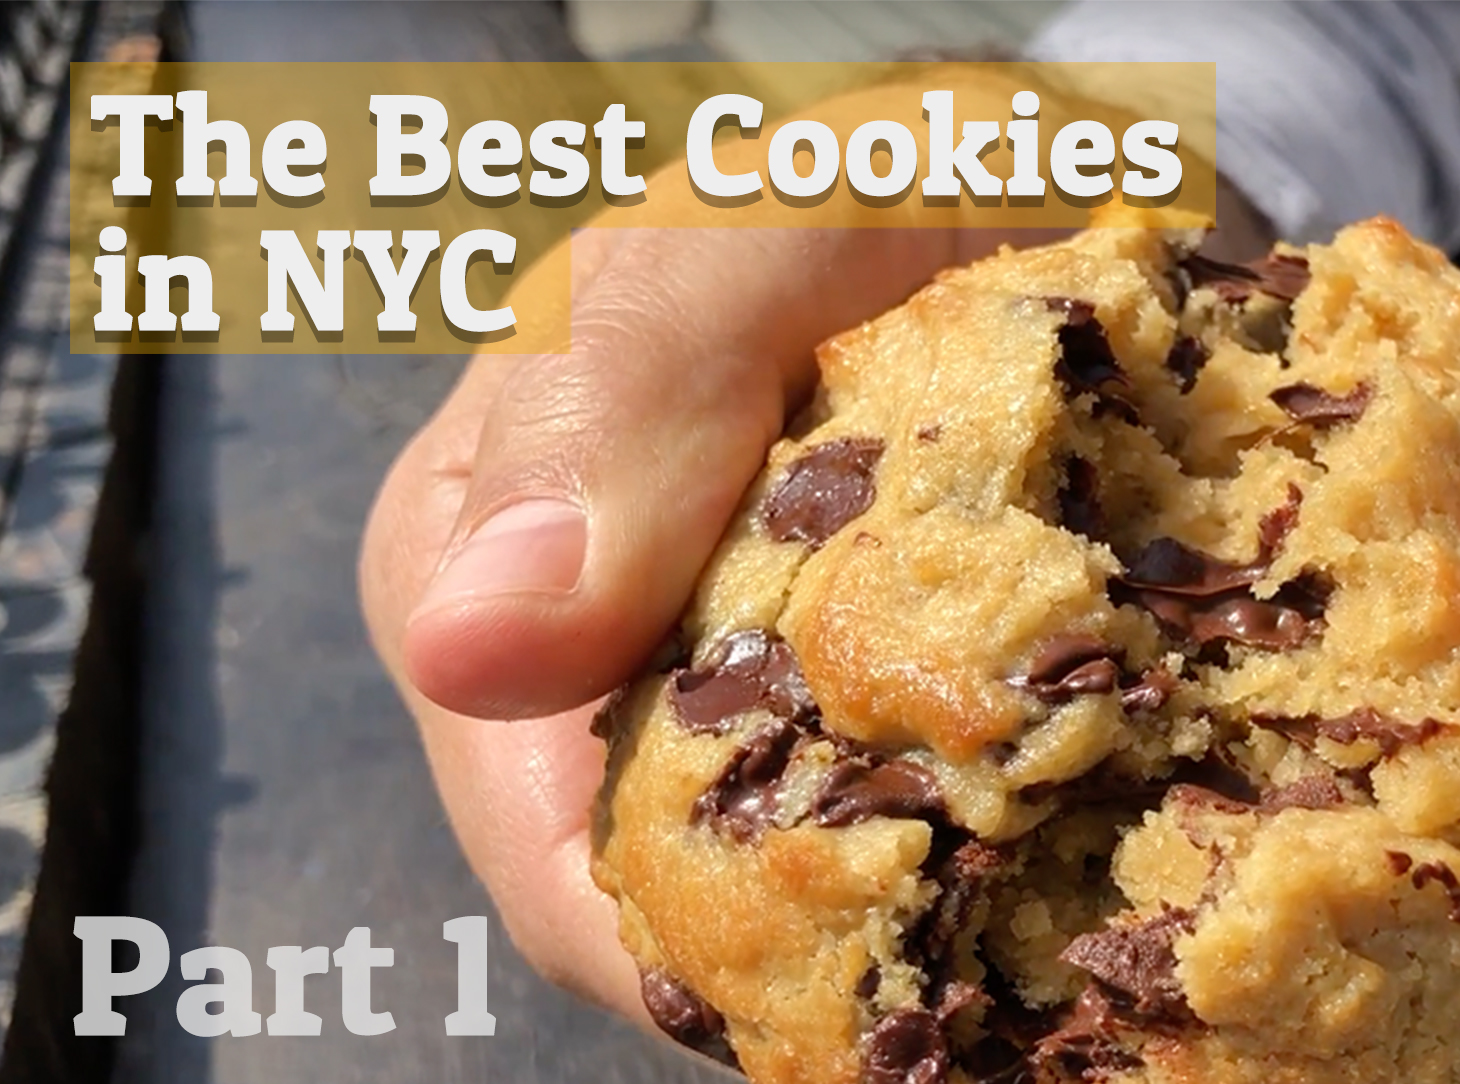 The Best Cookies in NYC - part 1